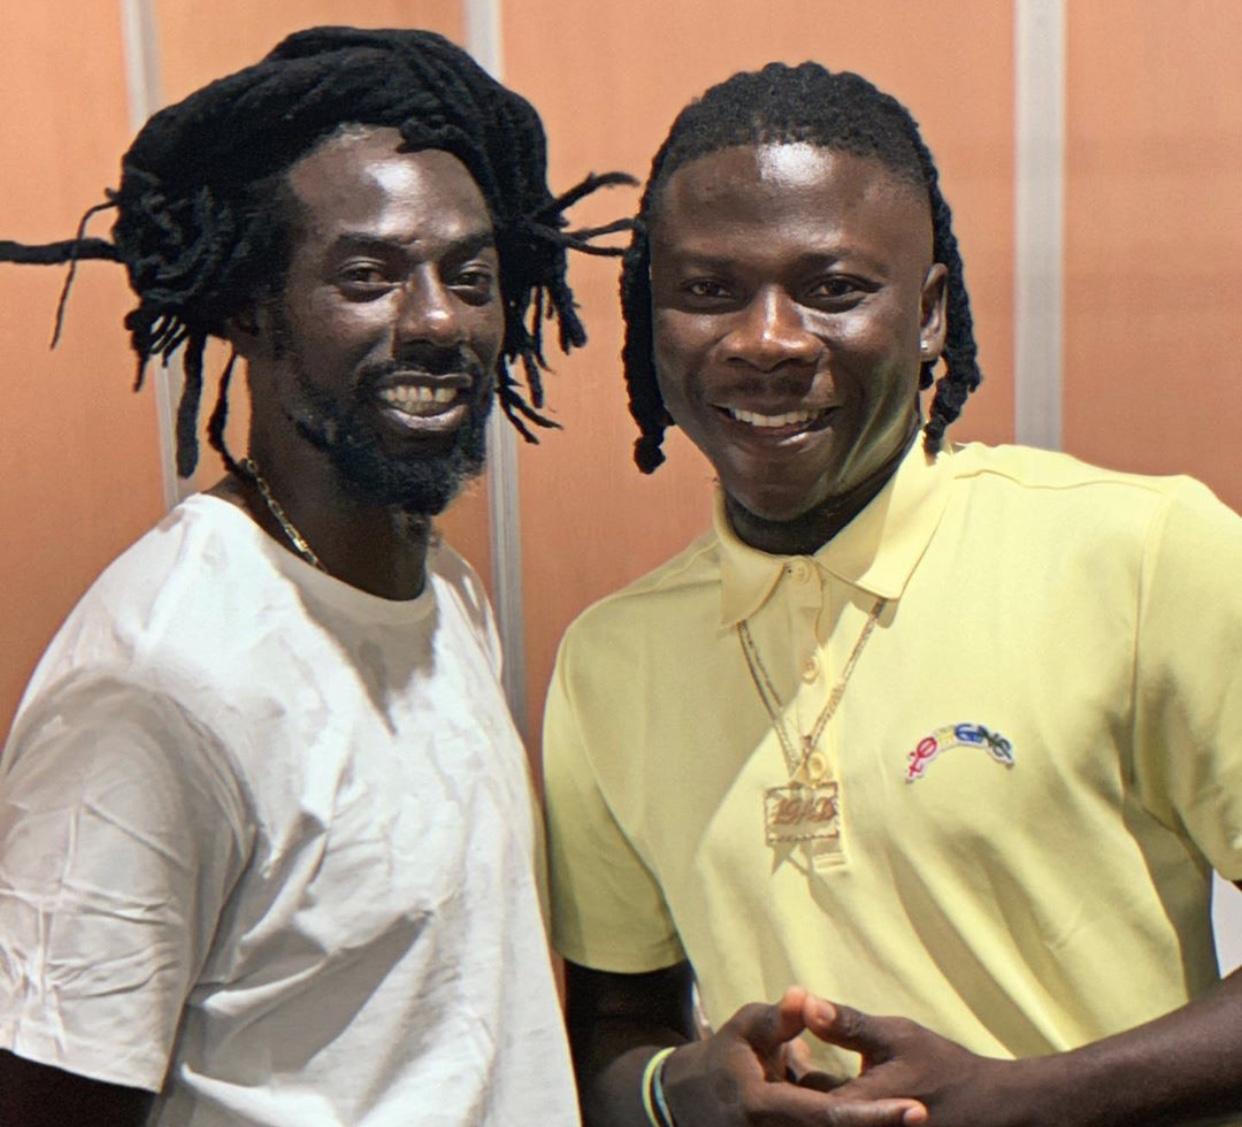 A collaboration with Buju Banton and other top artistes may be in the offing – Stonebwoy